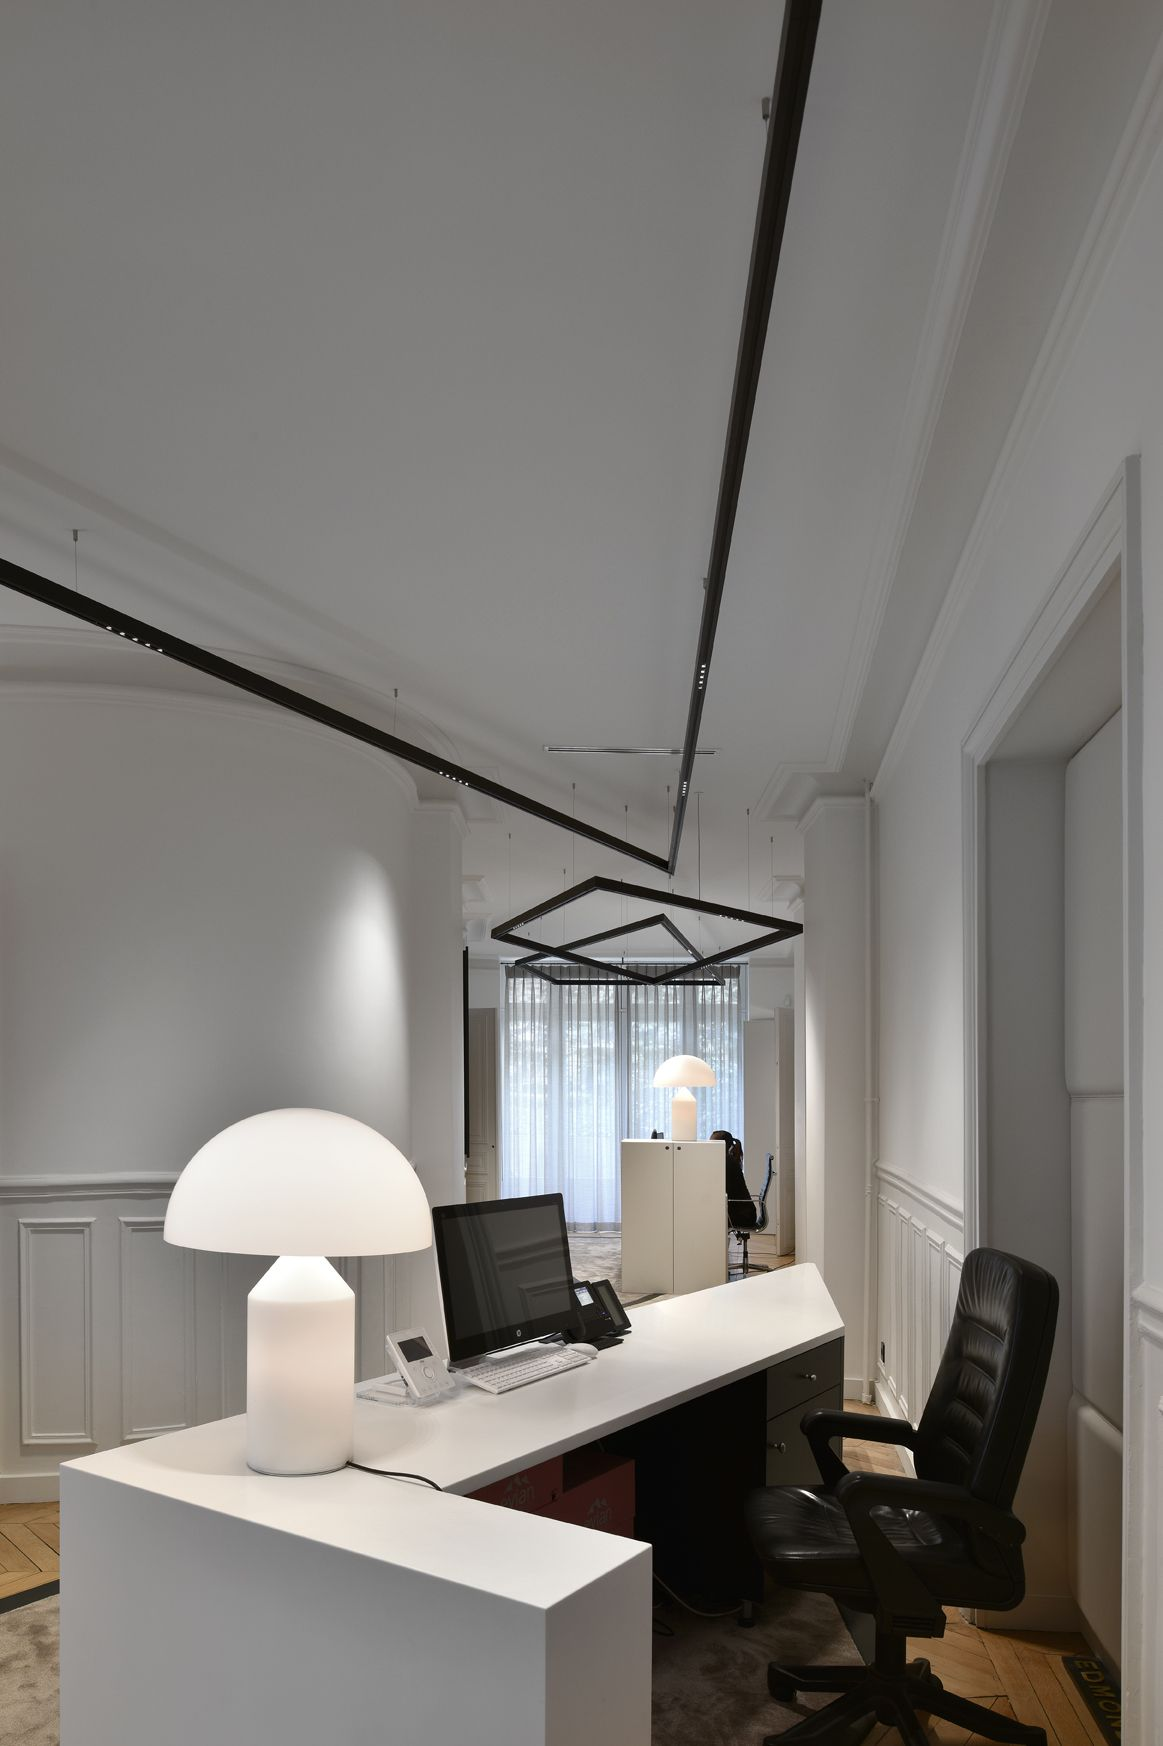 kreon lighting. Kreon Tools Of Light Is A Trendsetting Lighting Manufacturer Which Approaches From An Architectural Perspective.